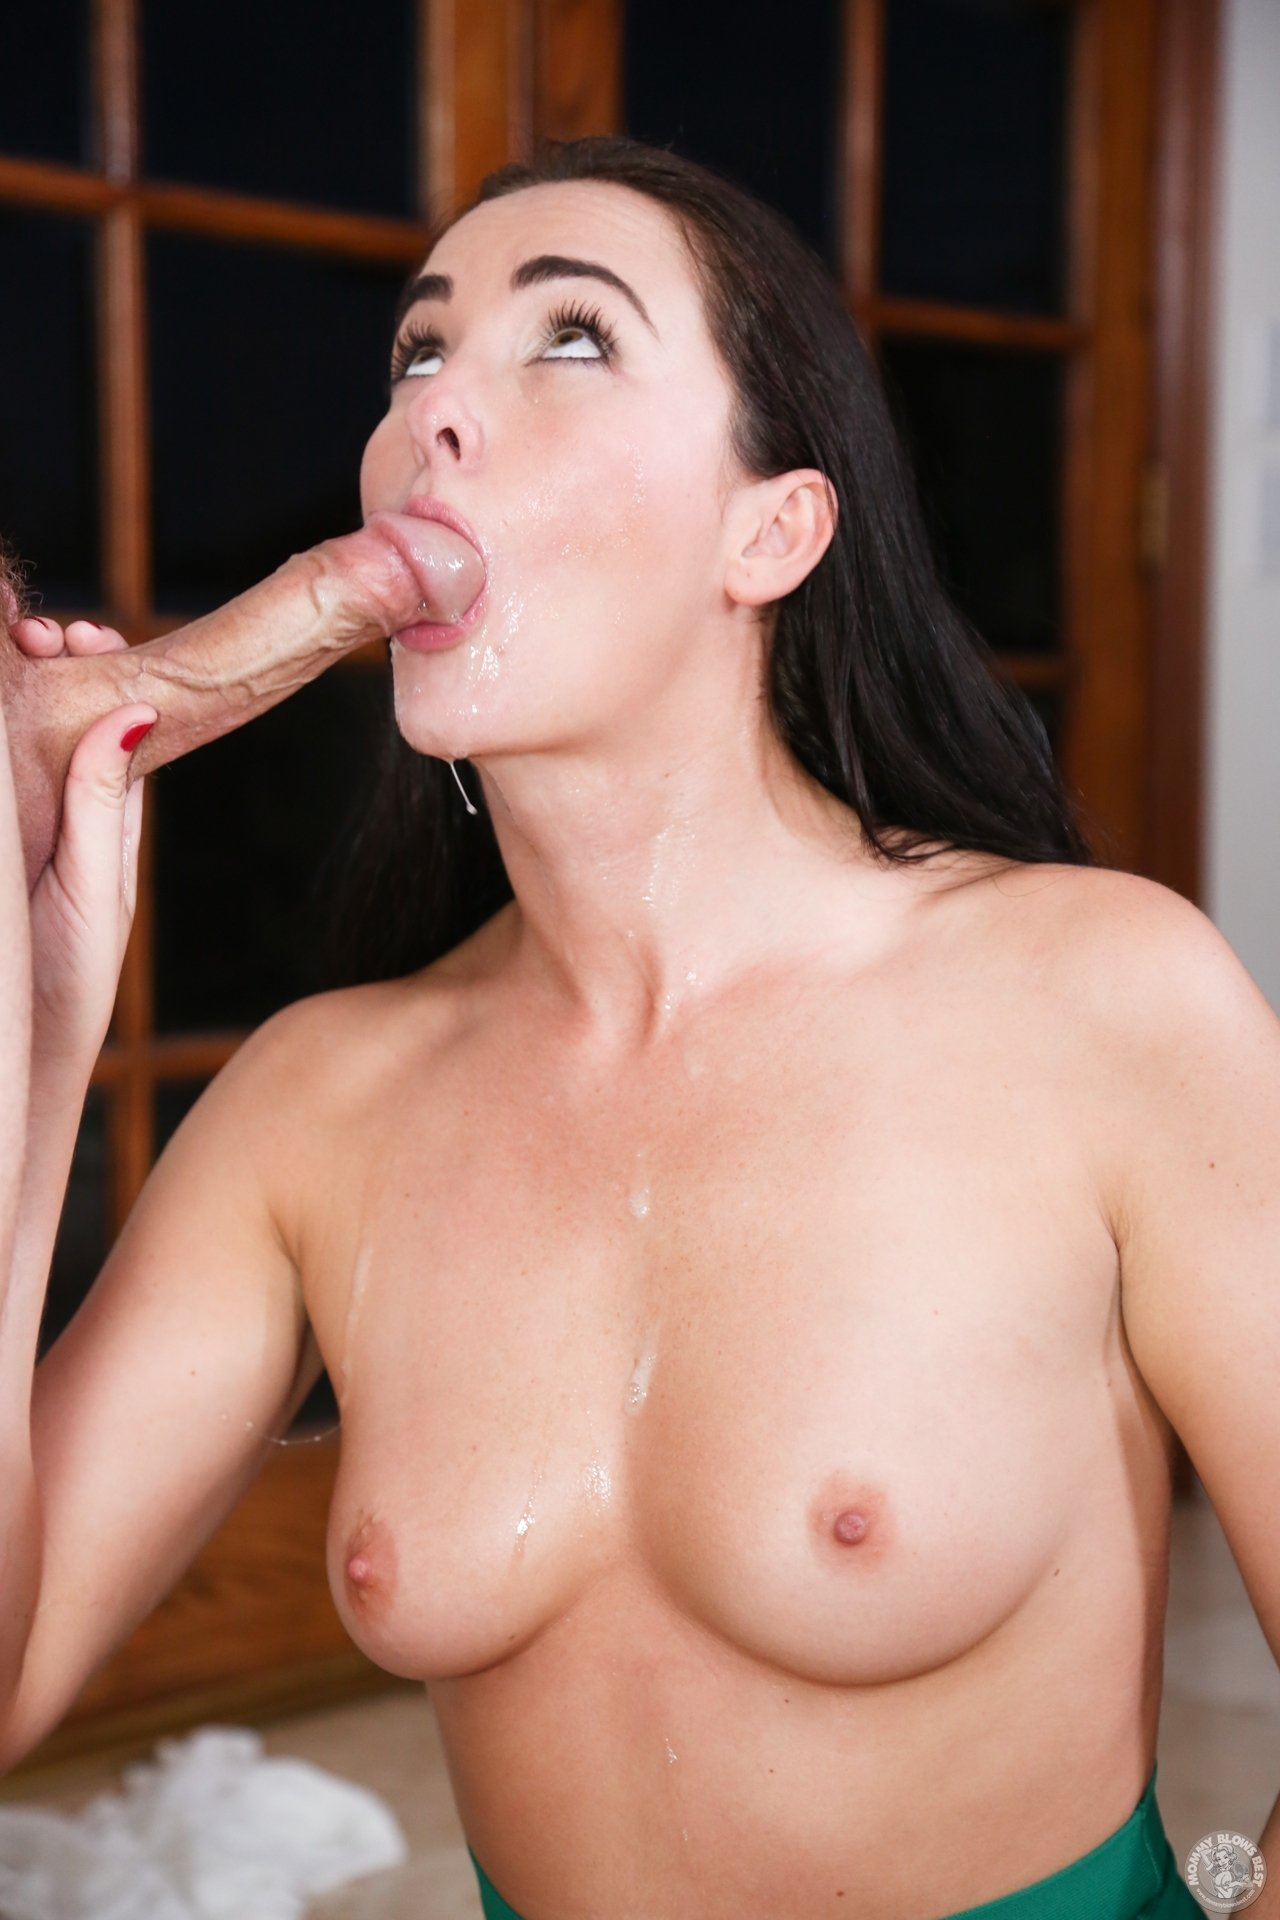 Rapper eve pussy pic Facial abuse missy vega